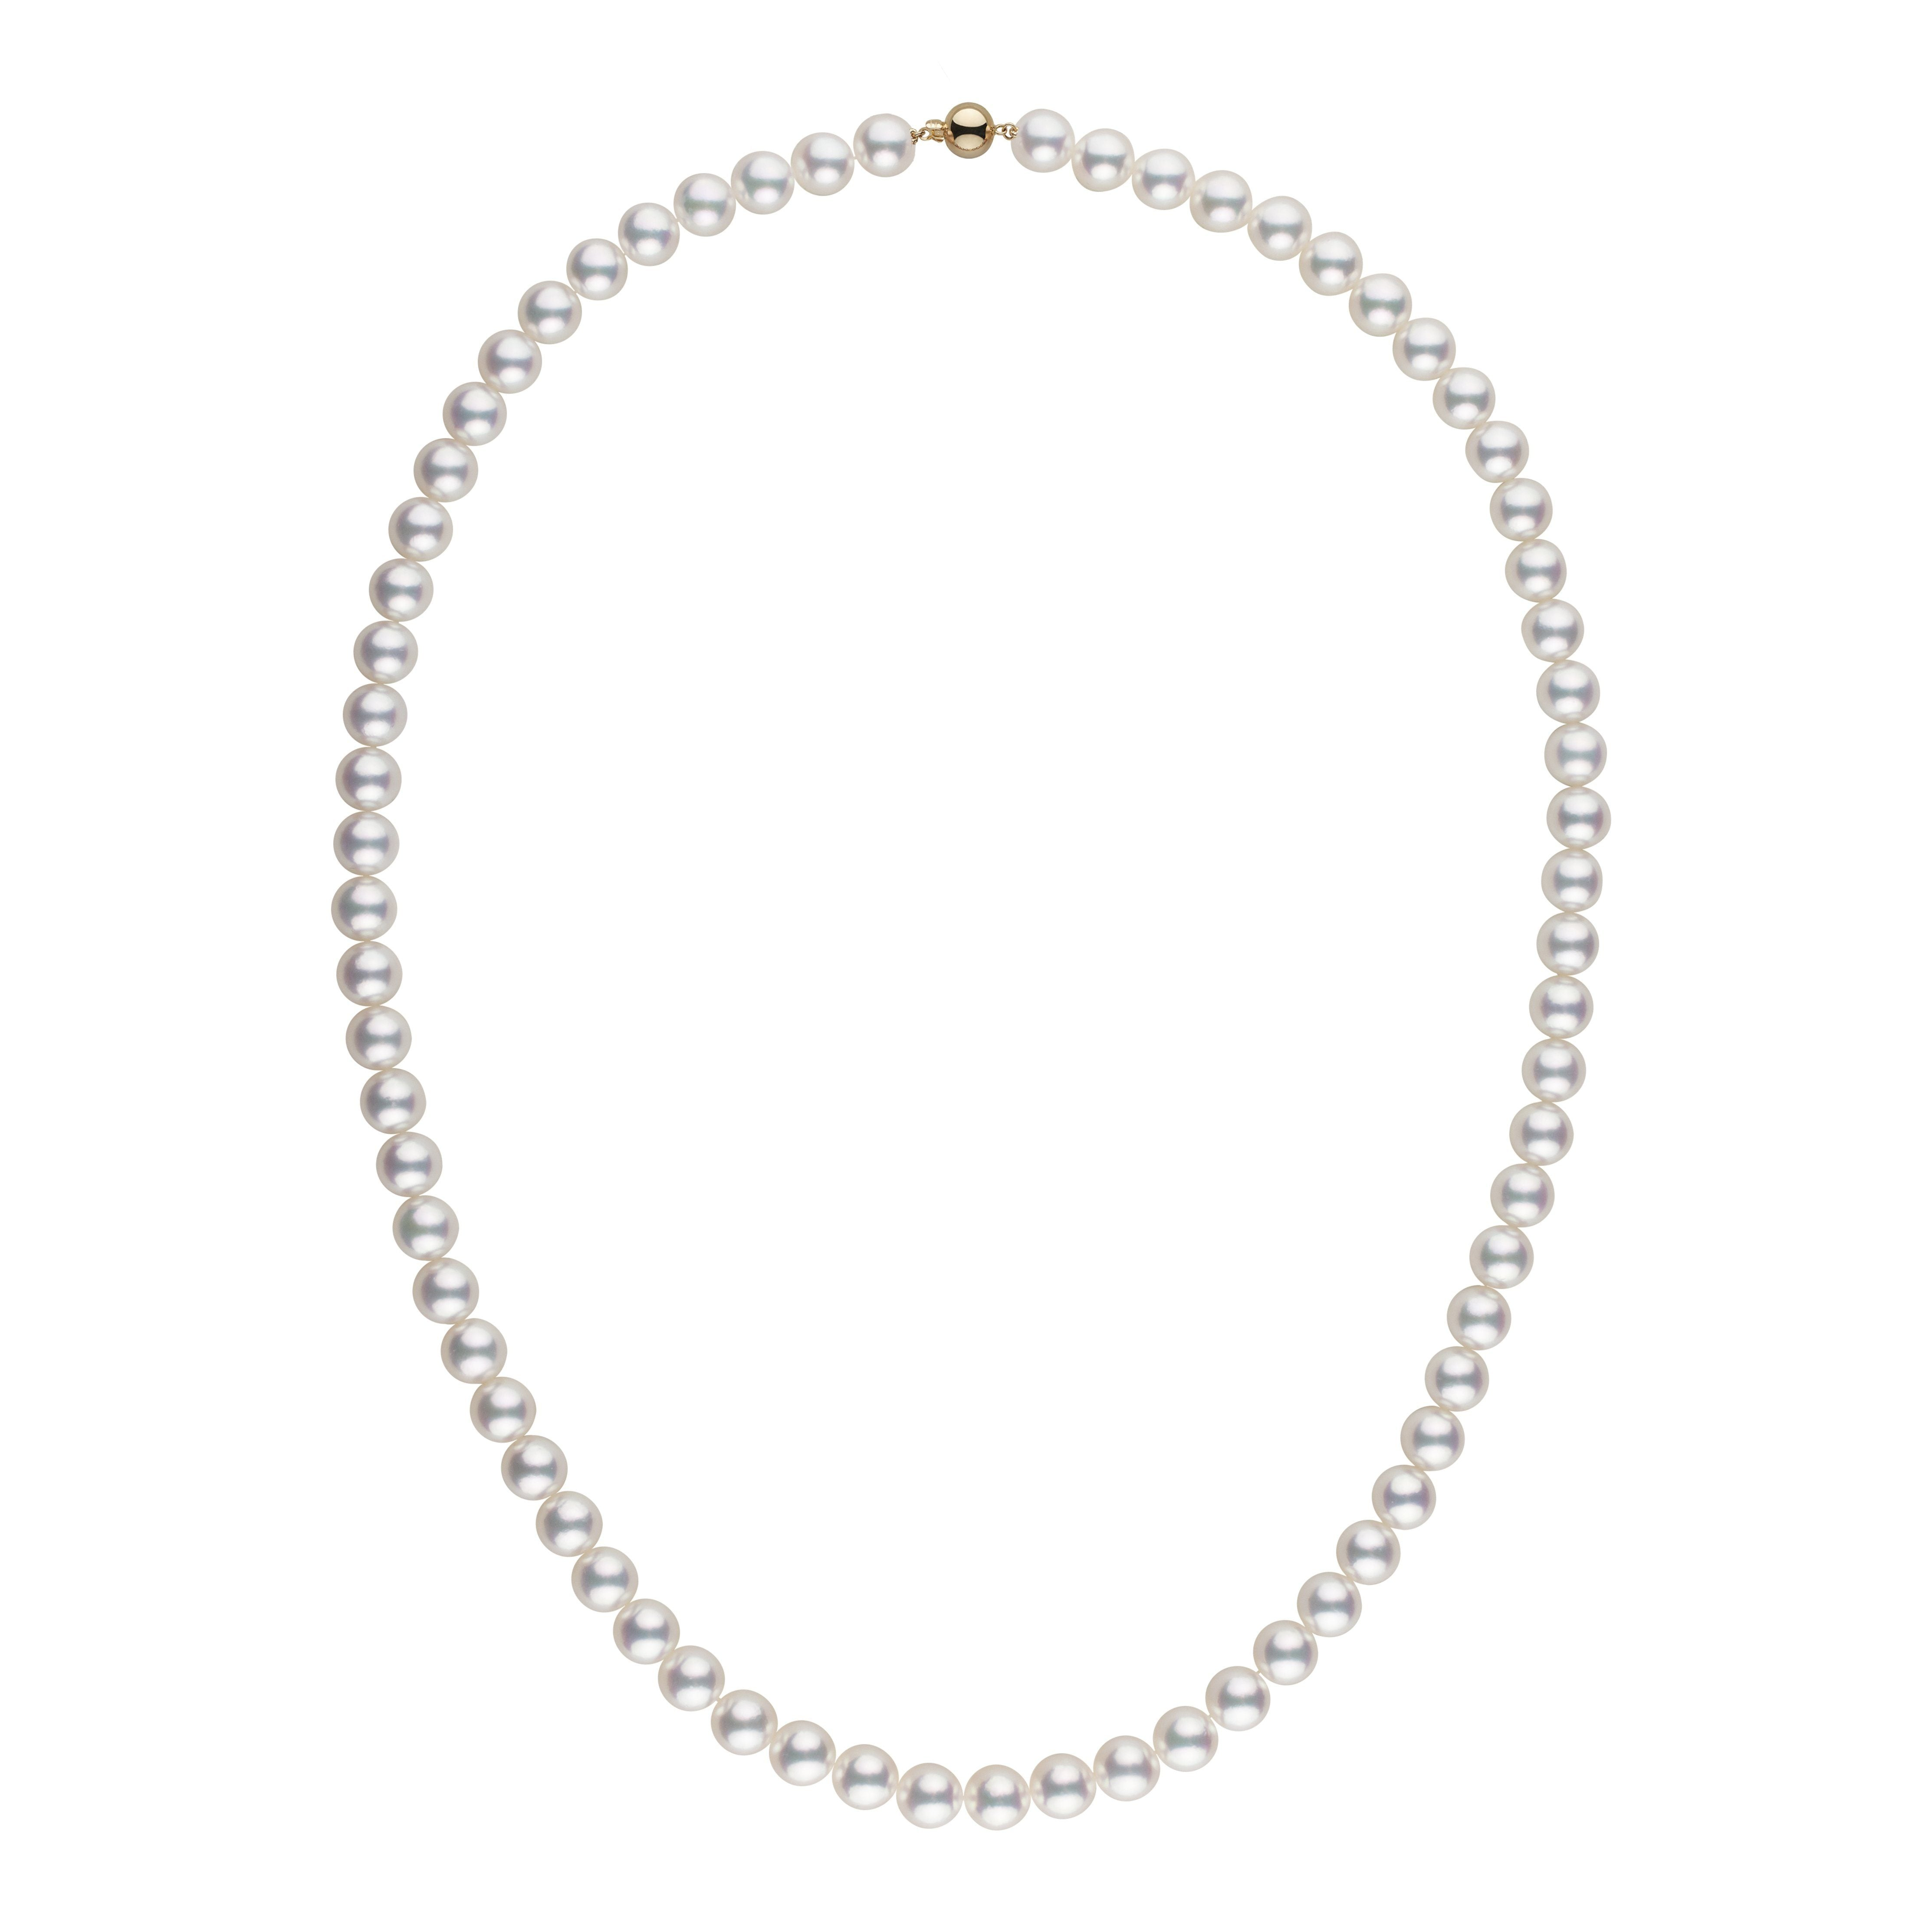 8.0-8.5 mm Special 22-Inch White Hanadama Akoya Pearl Necklace